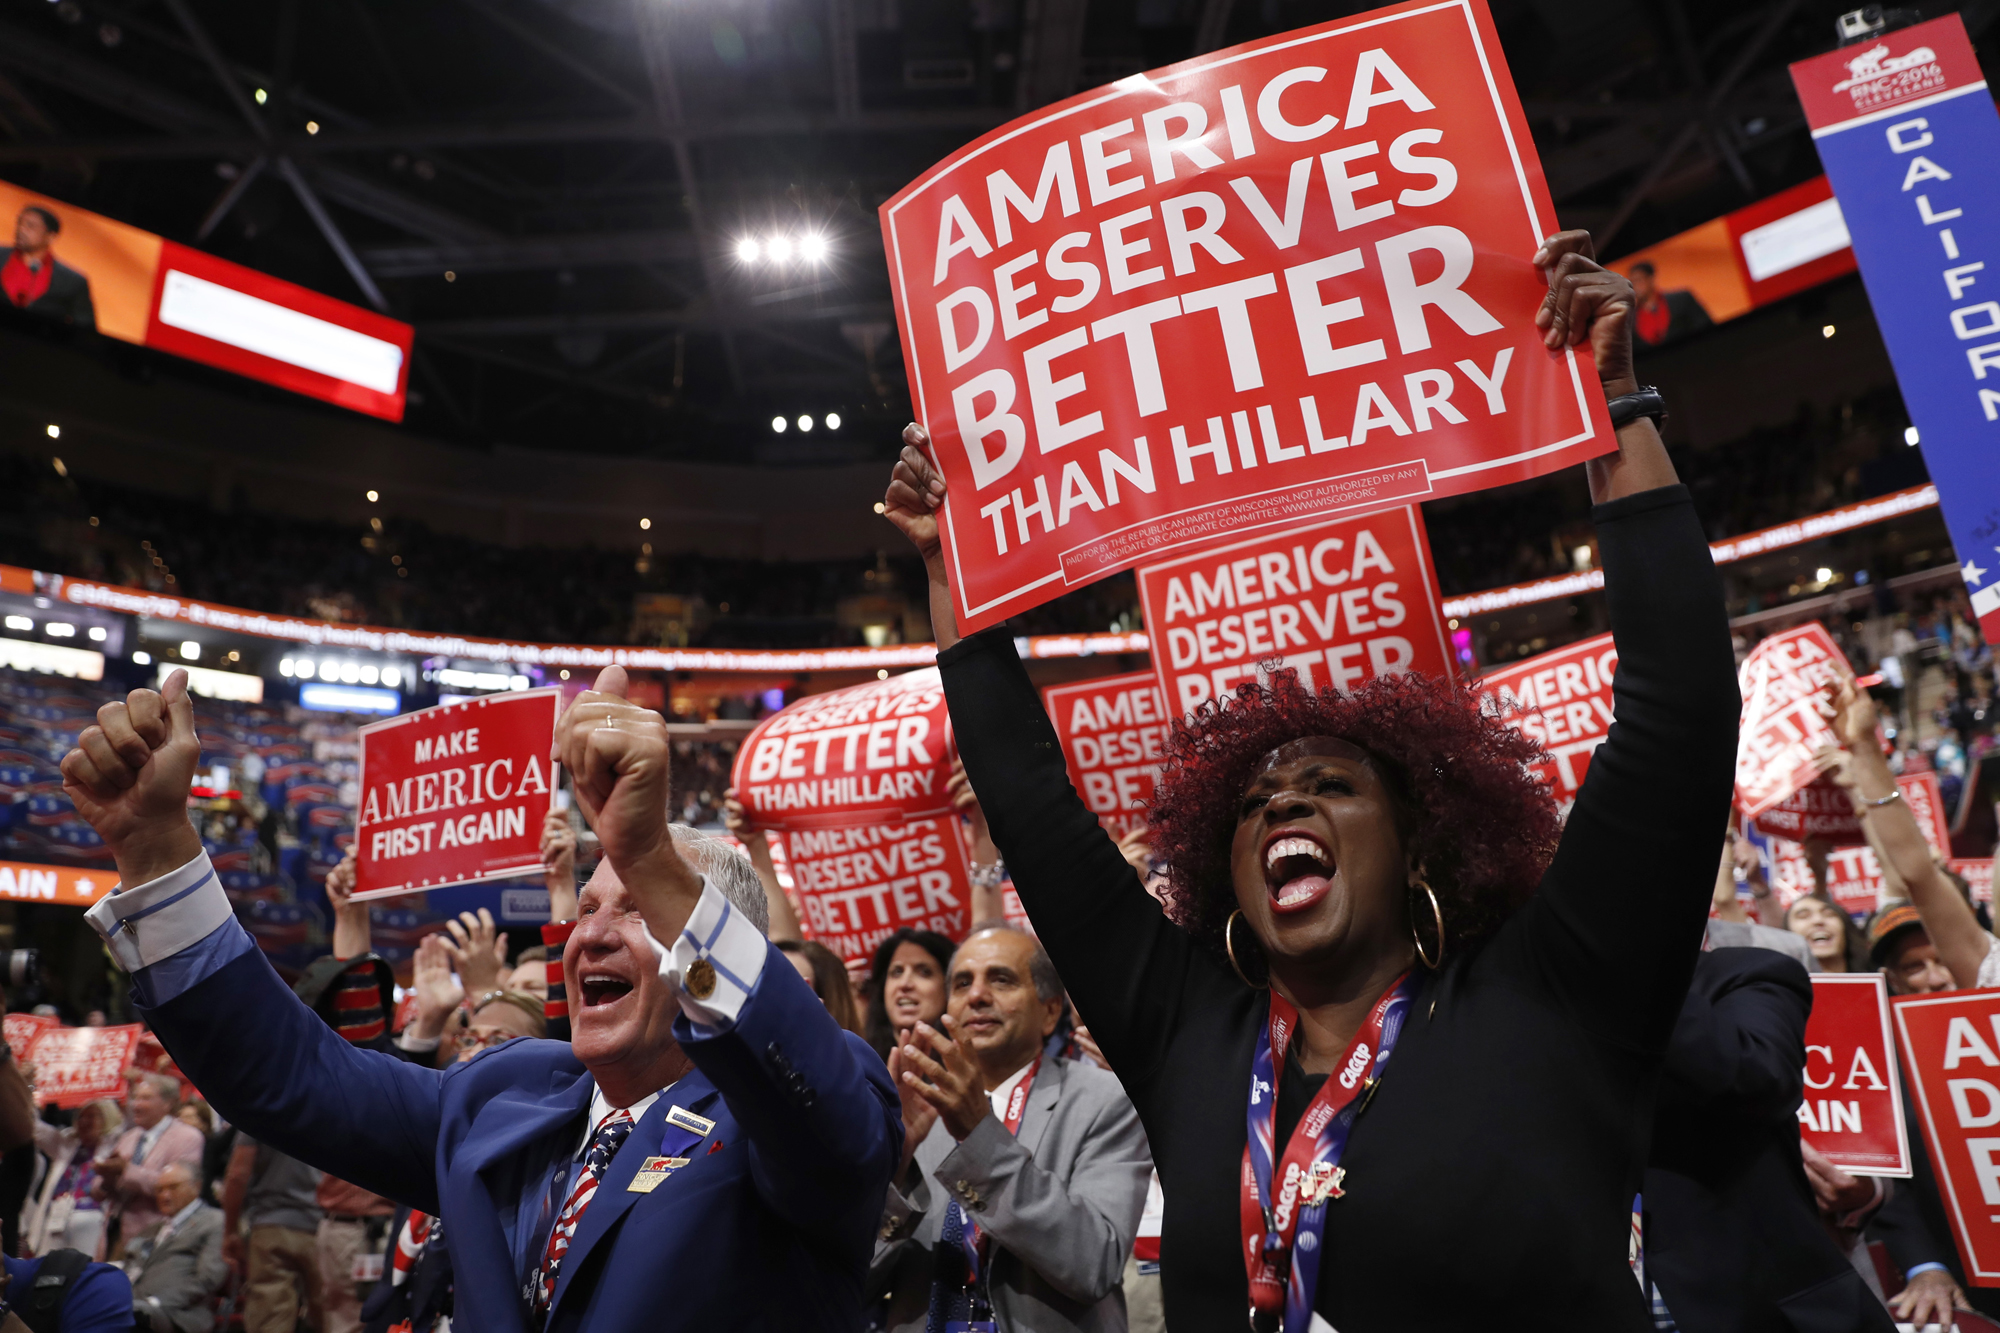 California delegate Shirley Hussar, right and her fellow delegates cheer during the third day session of the Republican National Convention in Cleveland, Wednesday, July 20, 2016.